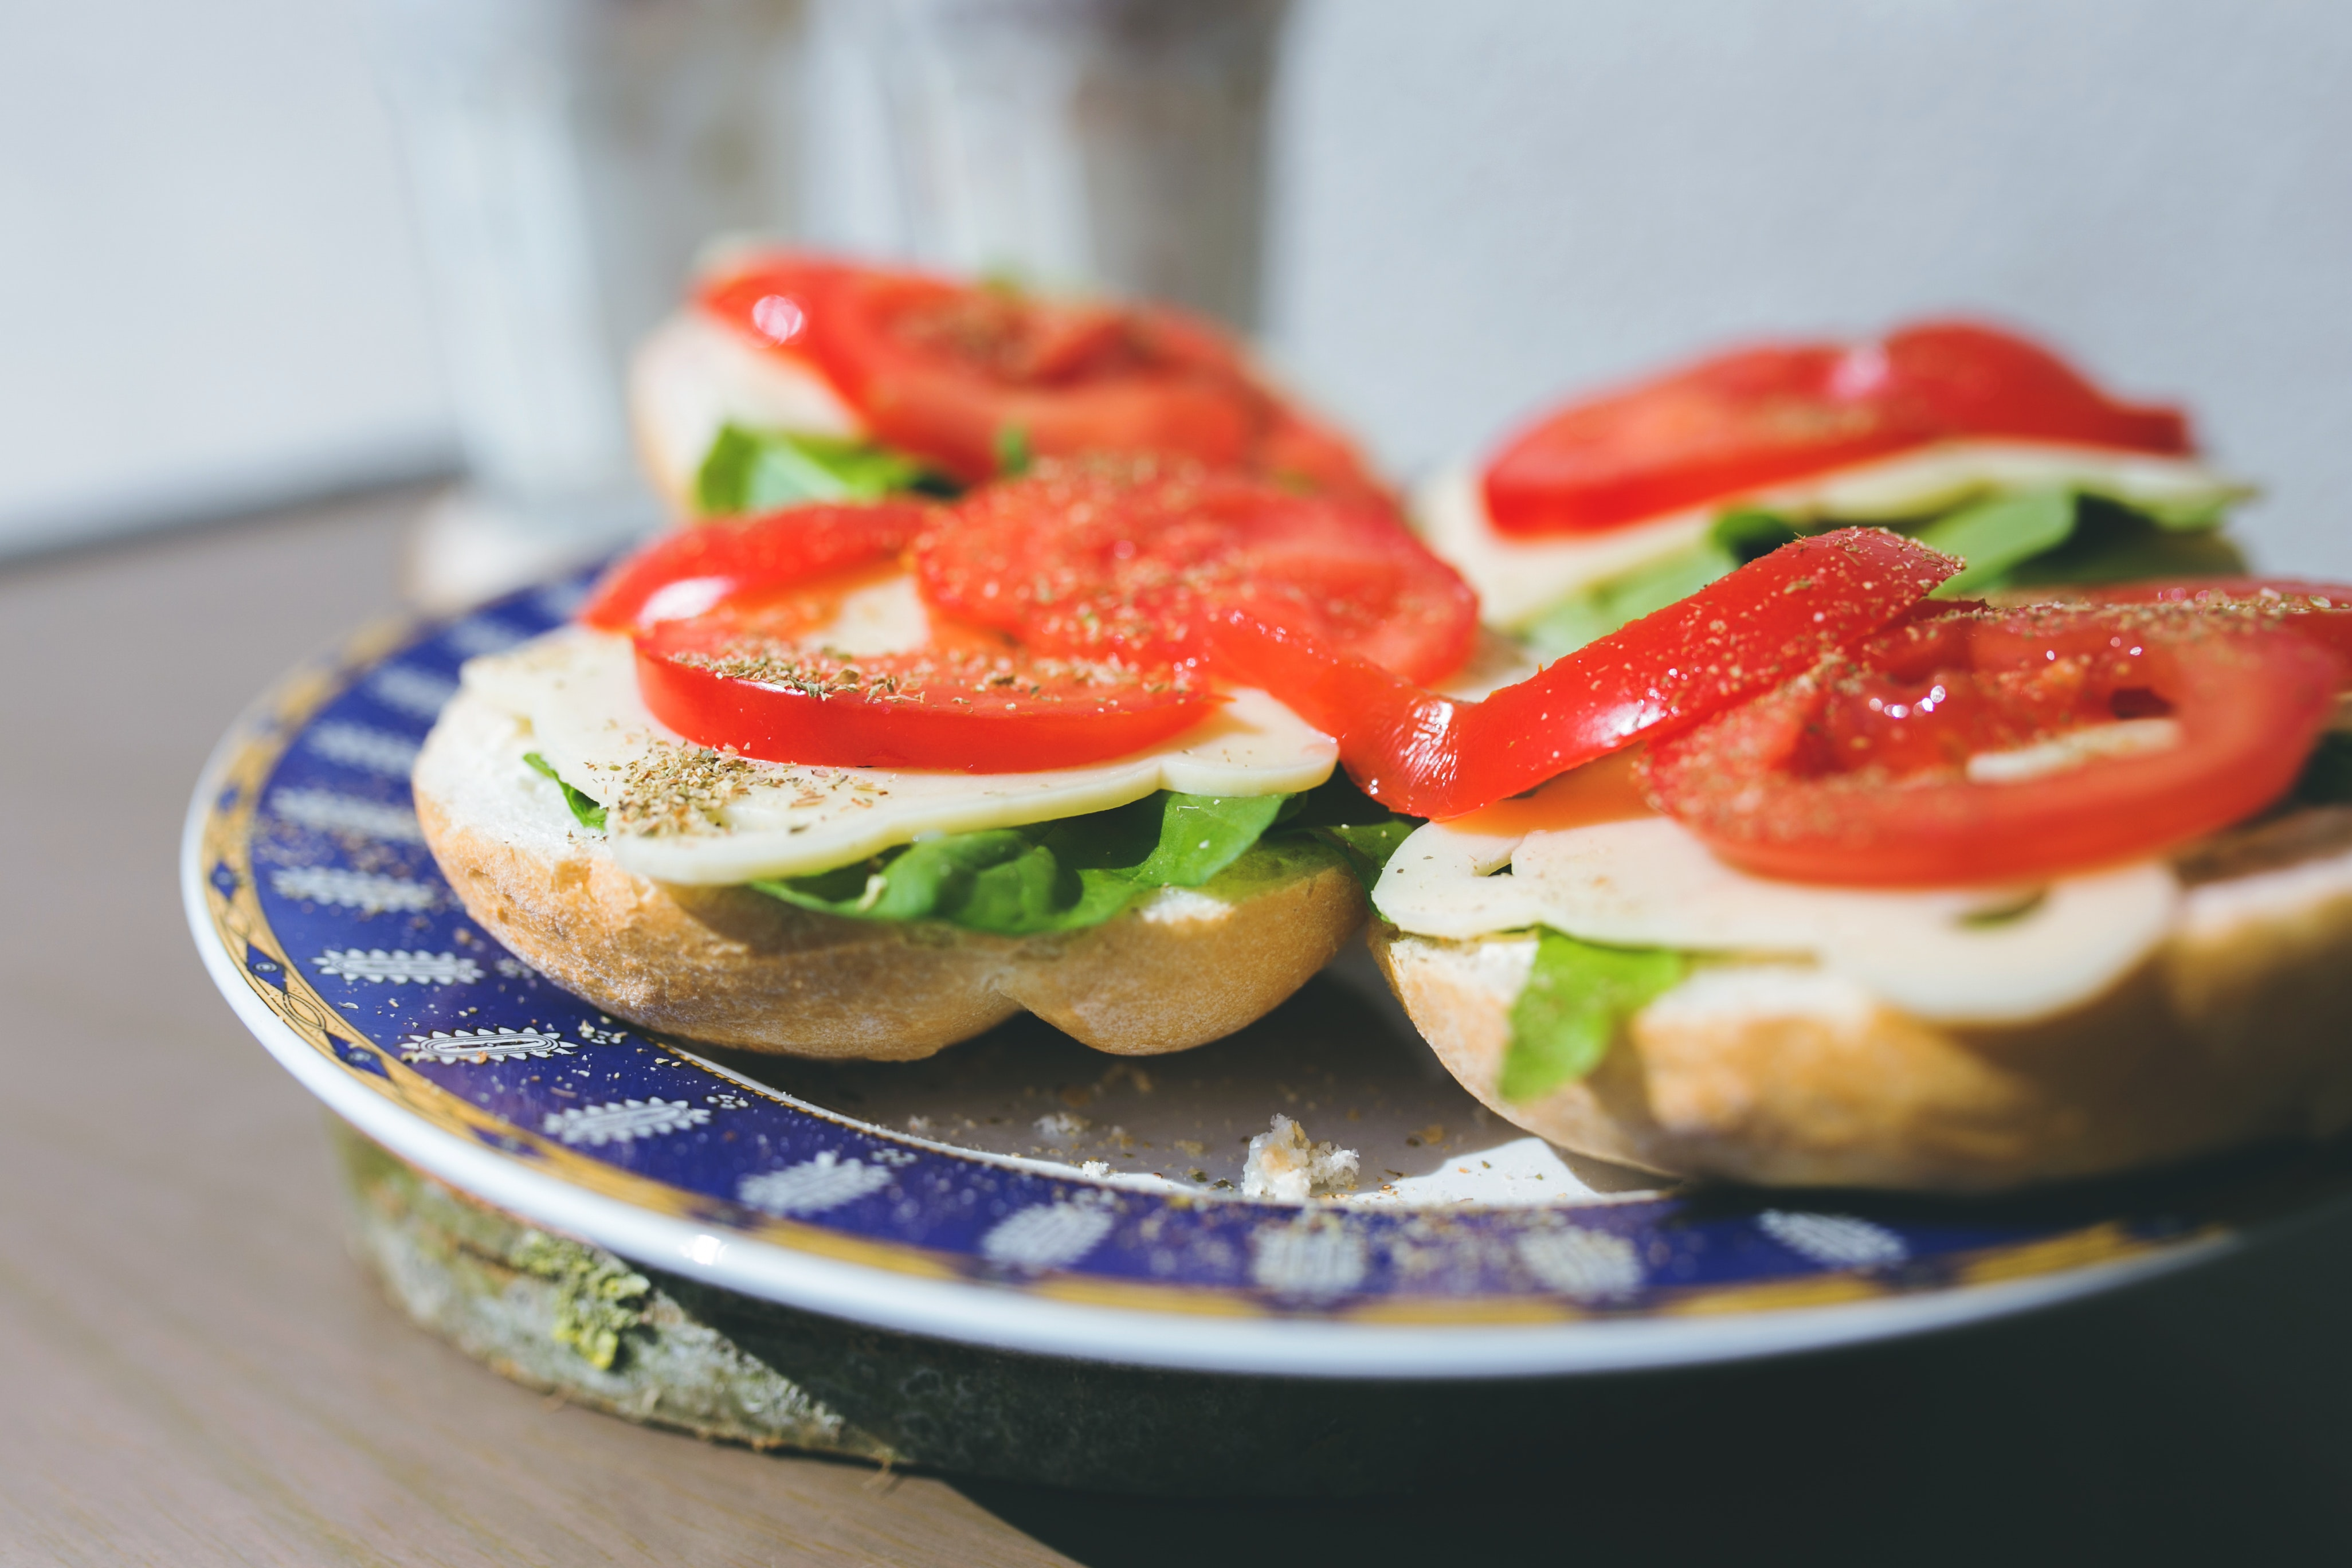 Sandwiches with cheese, lettuce and tomato on a plate photo